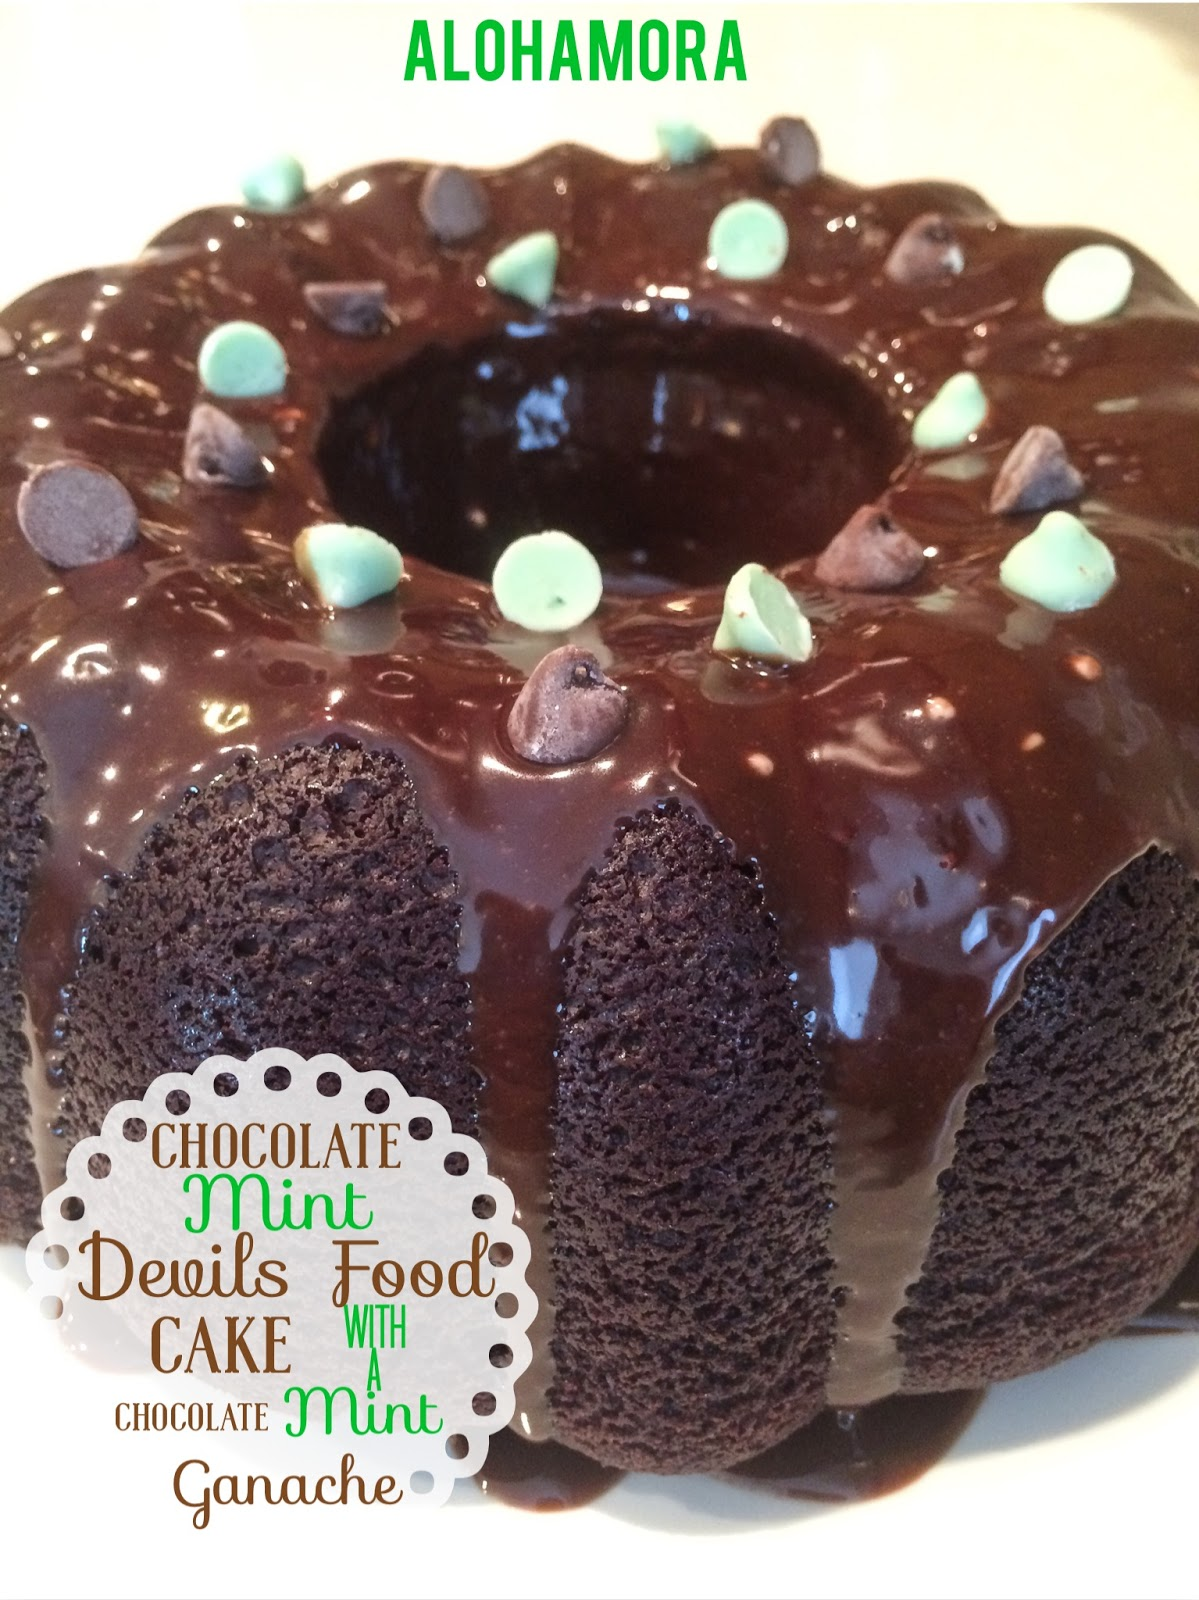 Chocolate Mint Devil's Food Cake with a Chocolate MInt Ganache in a bundt pan.  Easy to make, moist, deliciously chocolately, and looks fabulous straight out ot the bundt pan.  Drizzle the chocolate mint ganache over the top and it is too die for, or better than... cake.  Alohamora Open a Book http://www.alohamoraopenabook.blogspot.com/